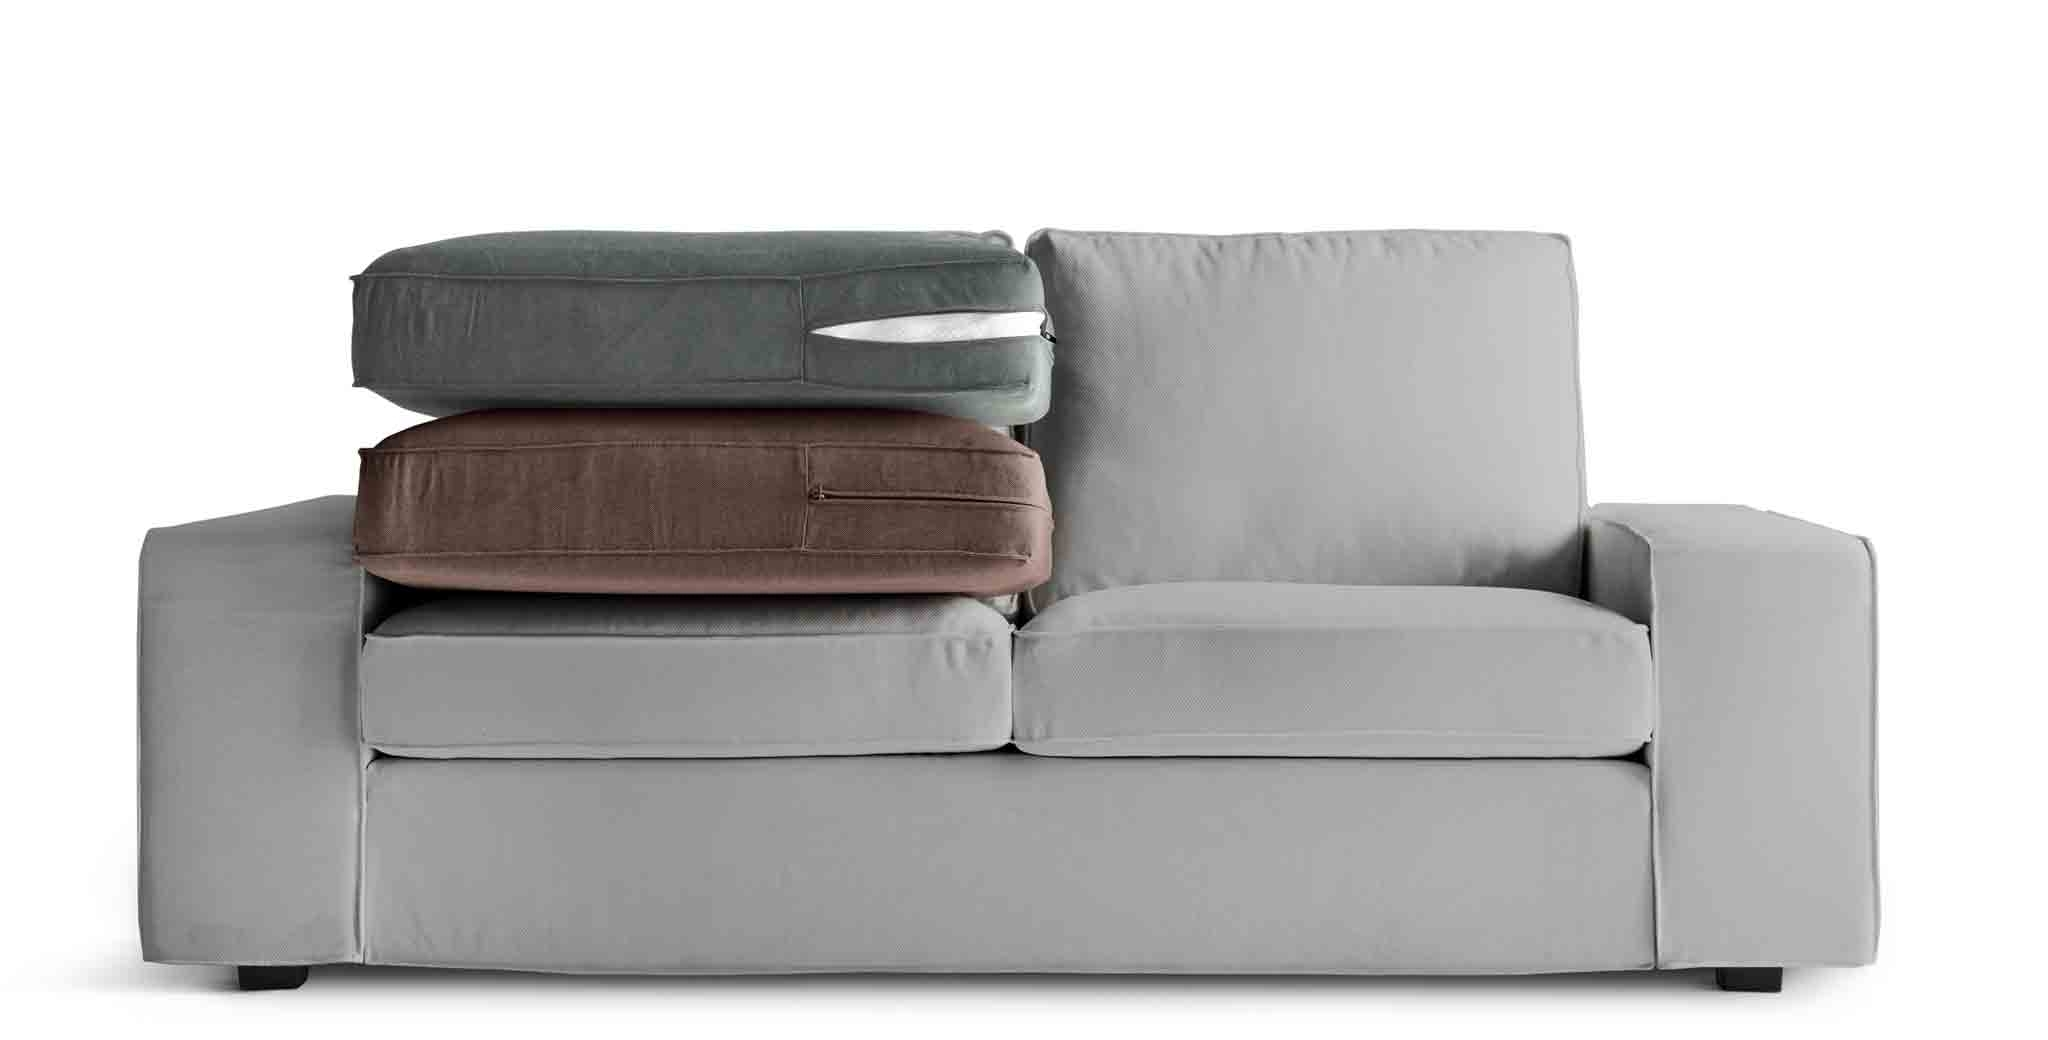 Ikea With Sofas With Removable Cover (View 6 of 15)